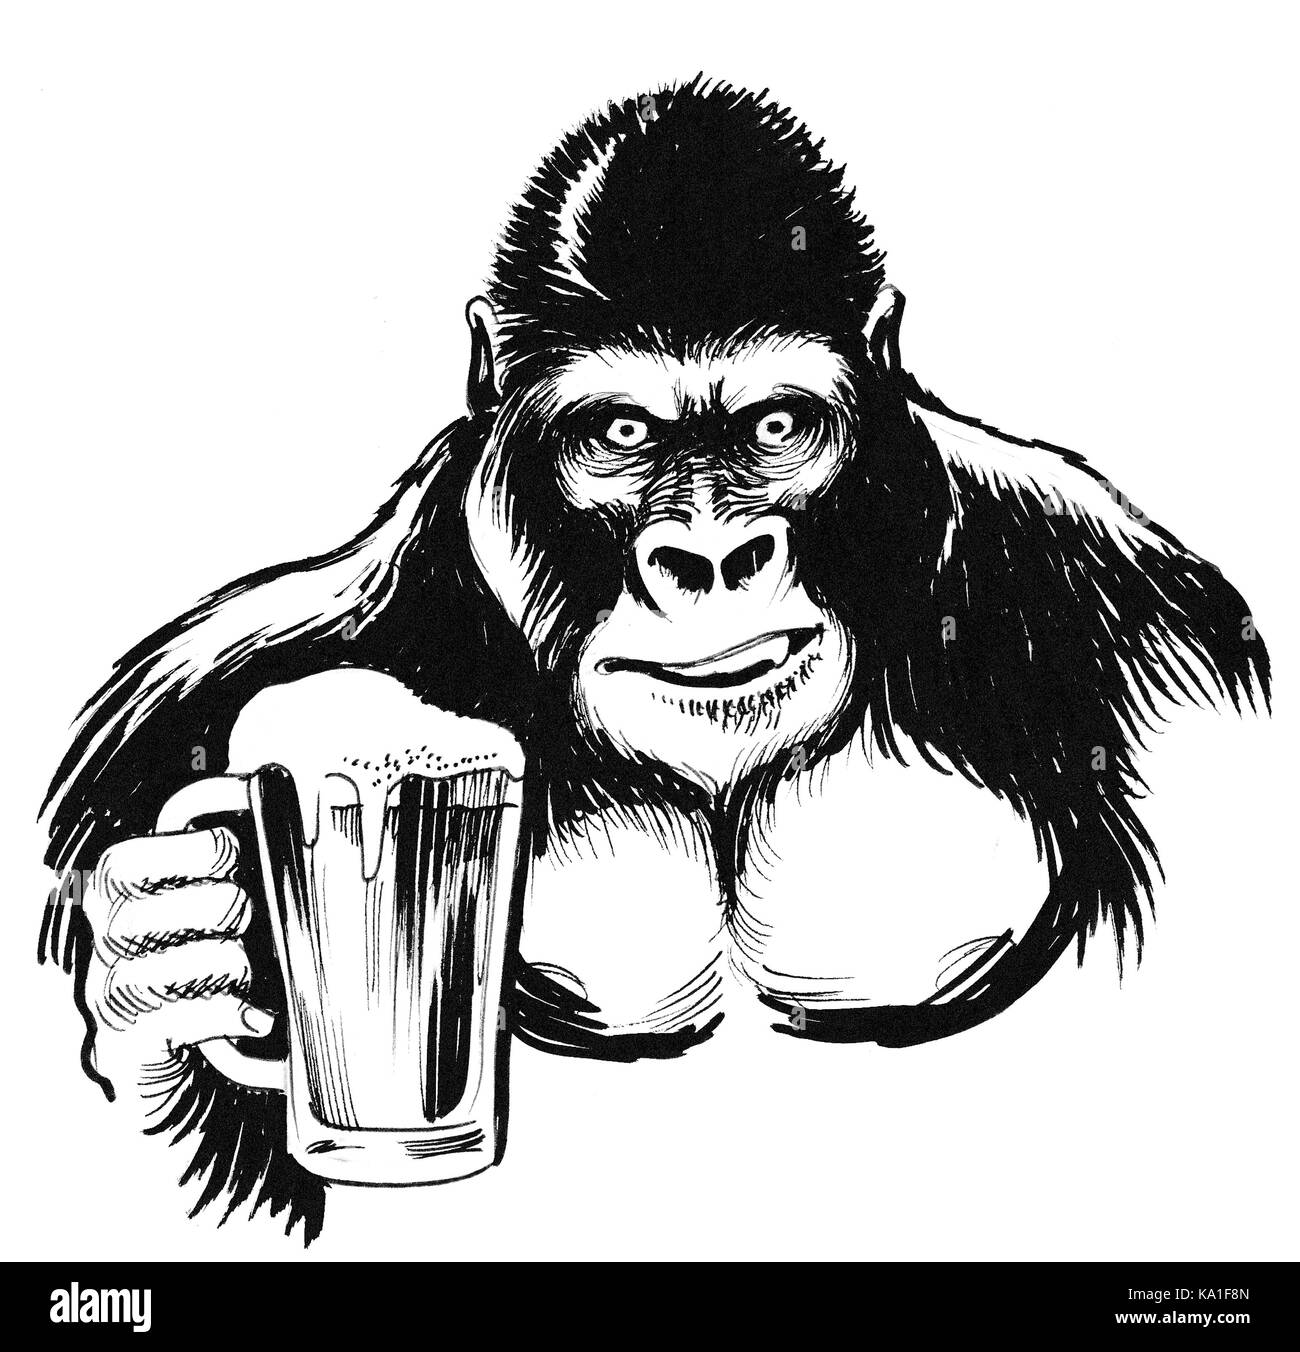 Gorilla Drawing Cut Out Stock Images & Pictures - Alamy